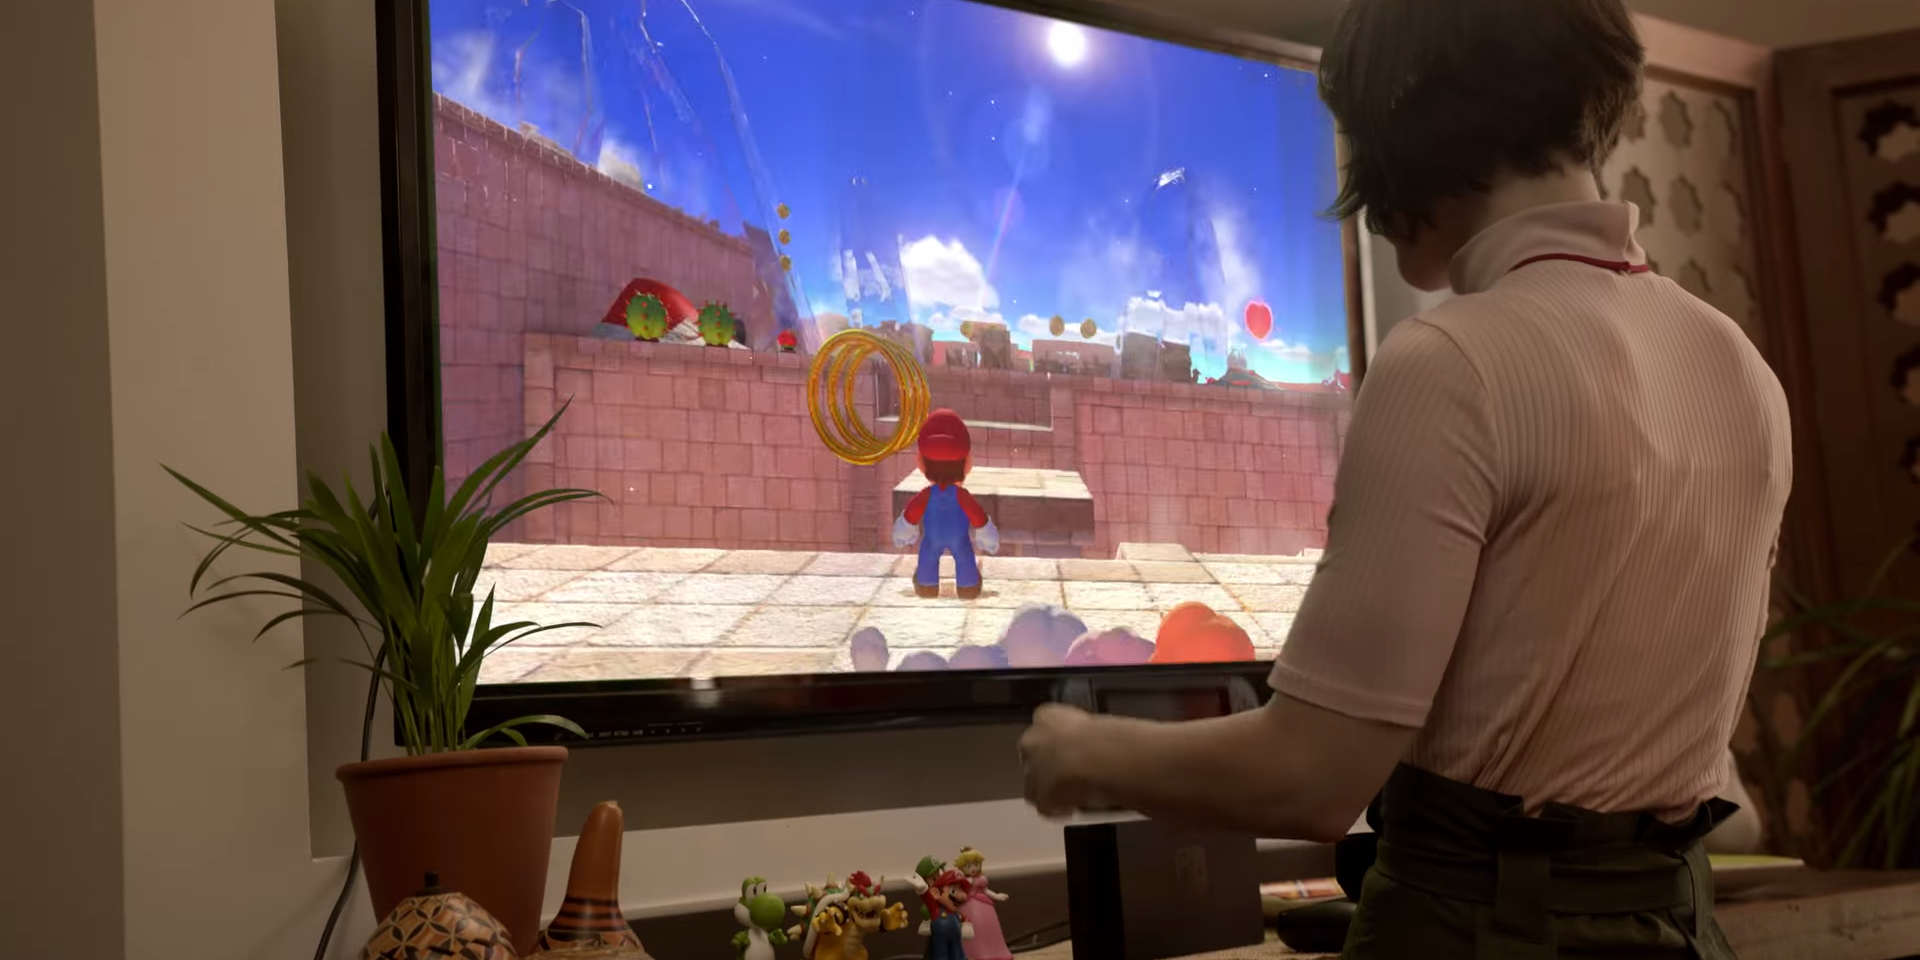 How to connect your Nintendo Switch to a TV, and what to do if it won't connect